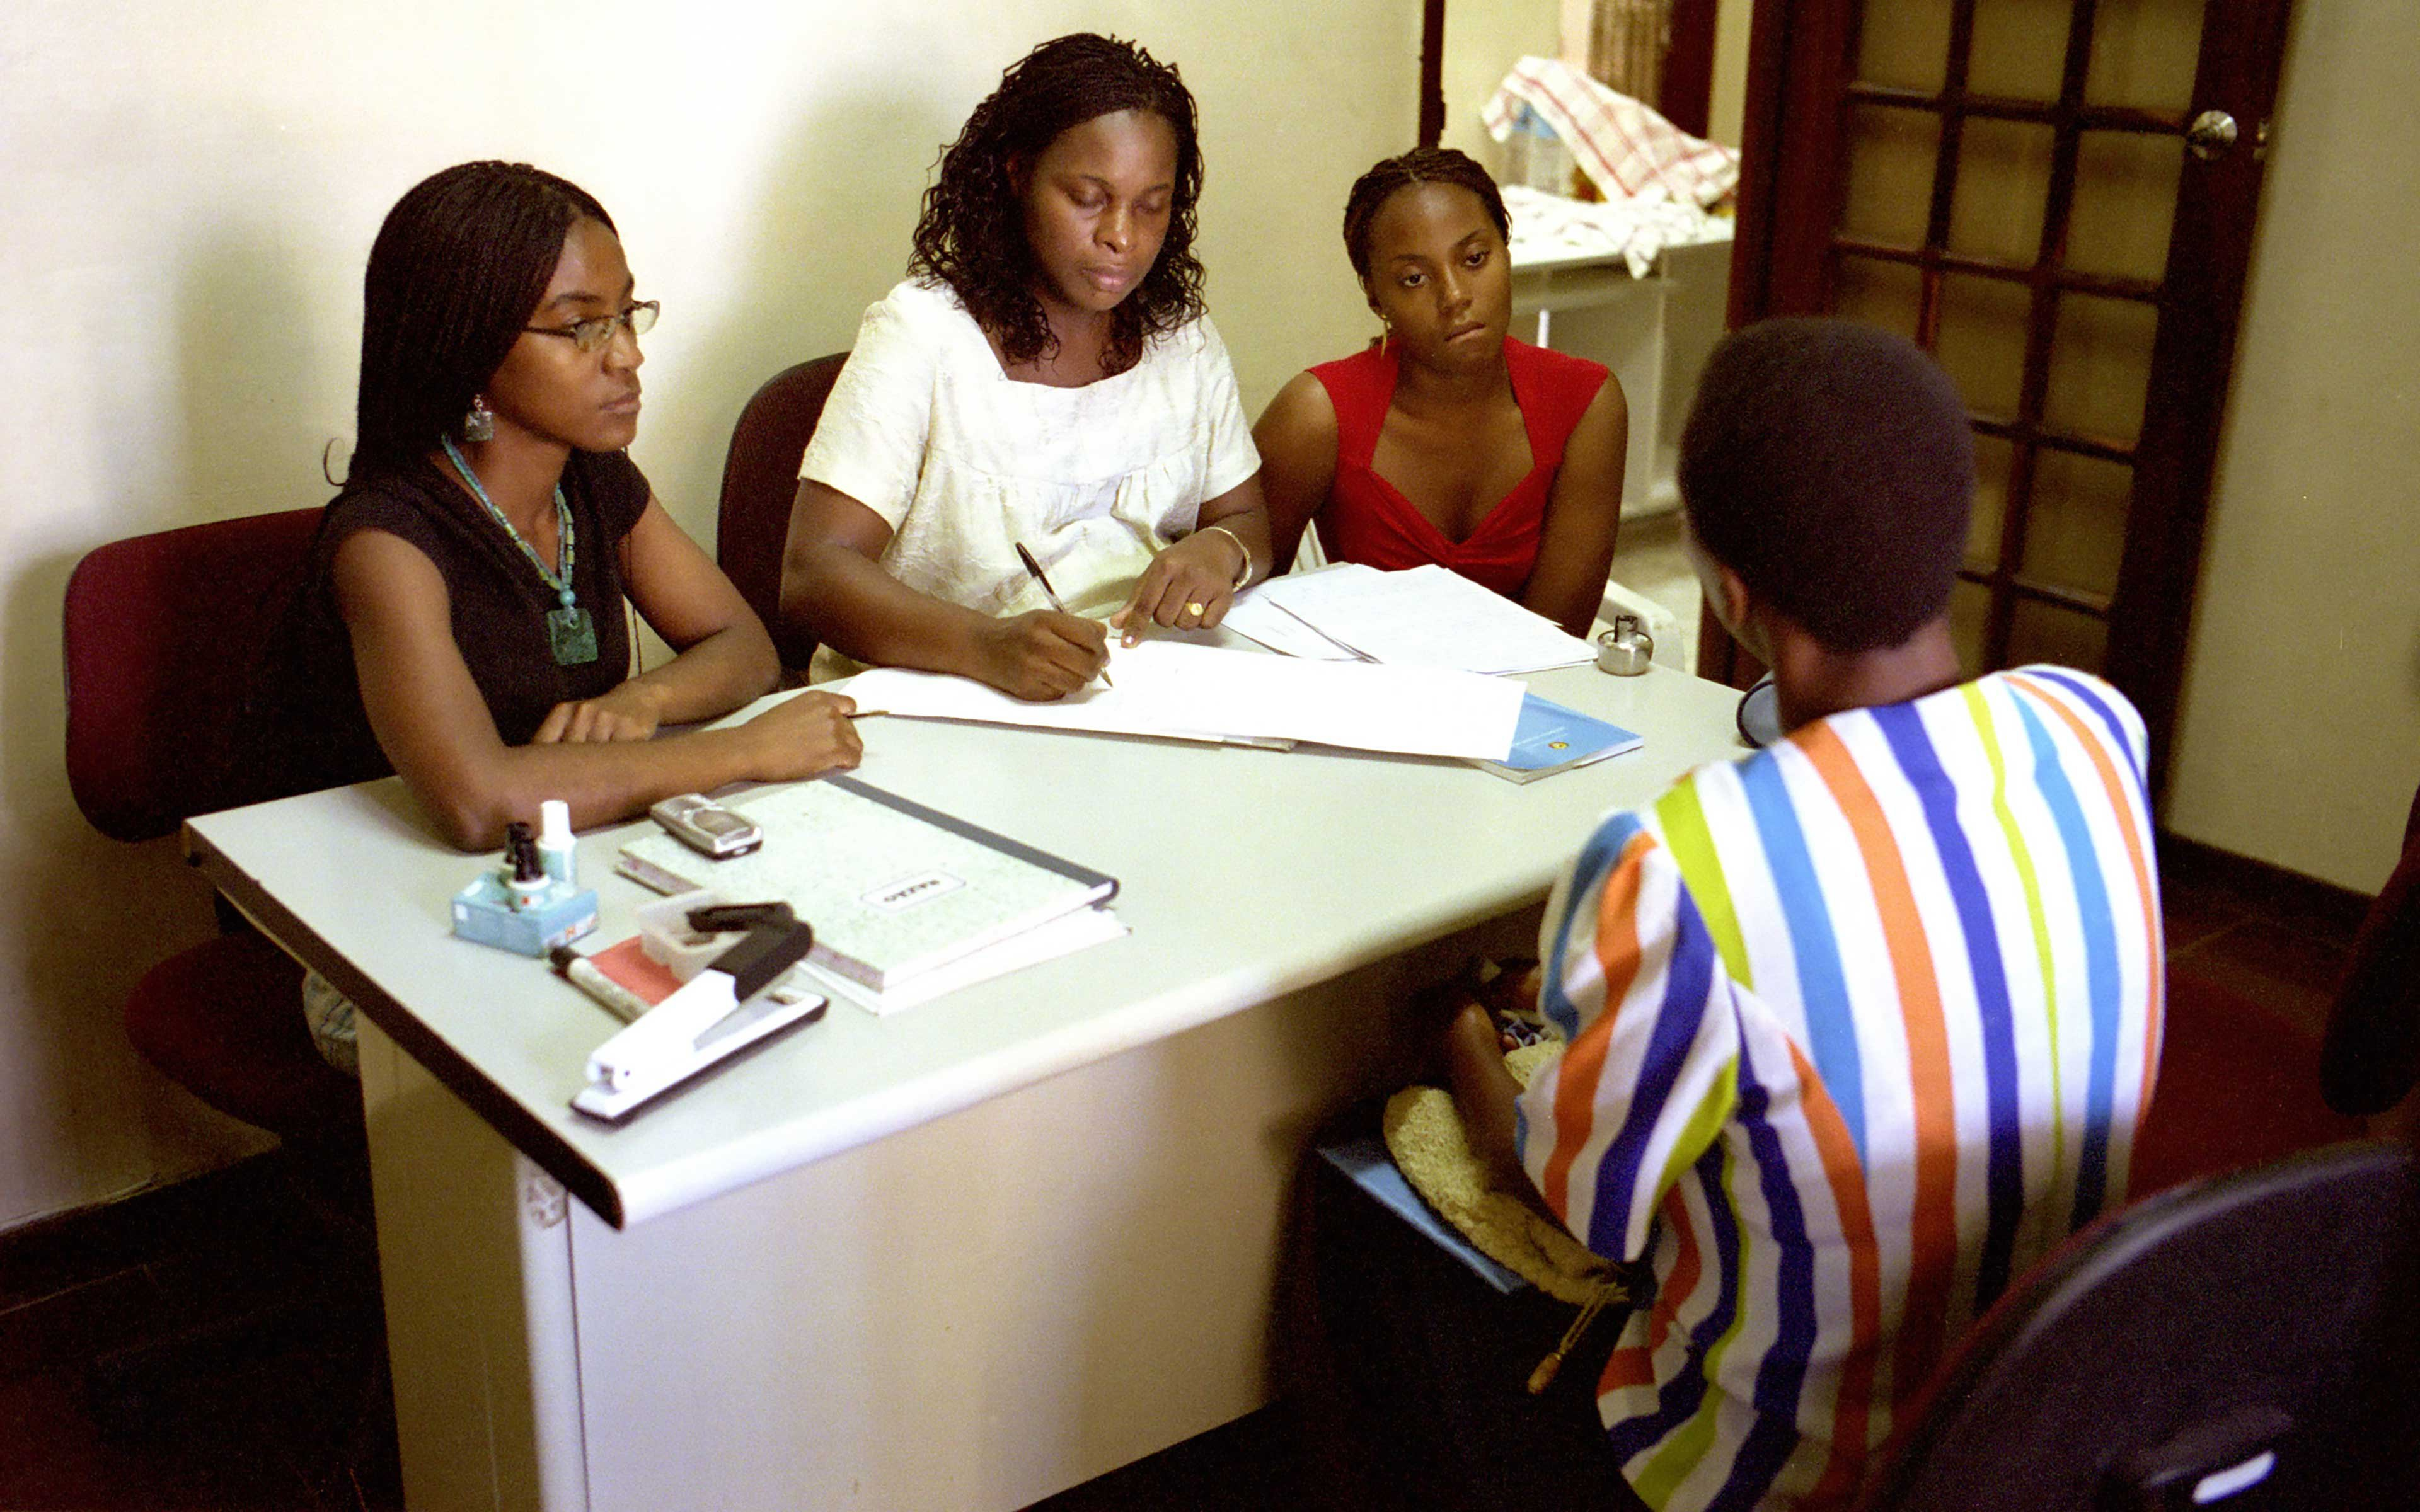 Attorneys at the Mozambique Women's Lawyer Association advise a client in their Maputo office. The association was a key member of the coalition Oxfam worked with that researched and proposed the Family Law.